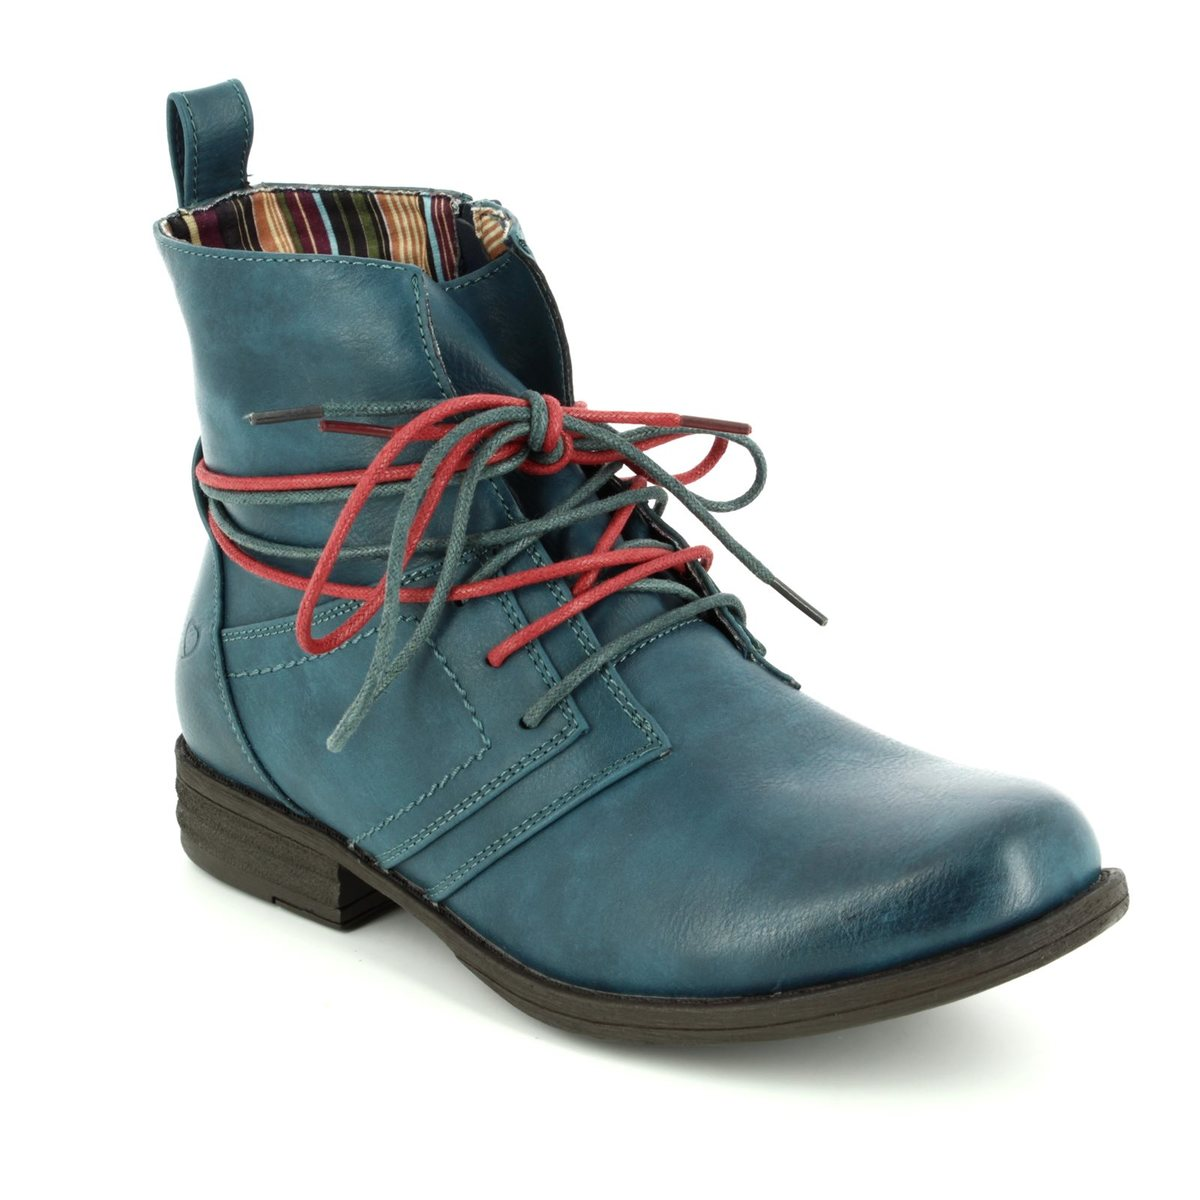 8c69b757a524 Heavenly Feet Ankle Boots - Teal blue - 6006 70 STRUT